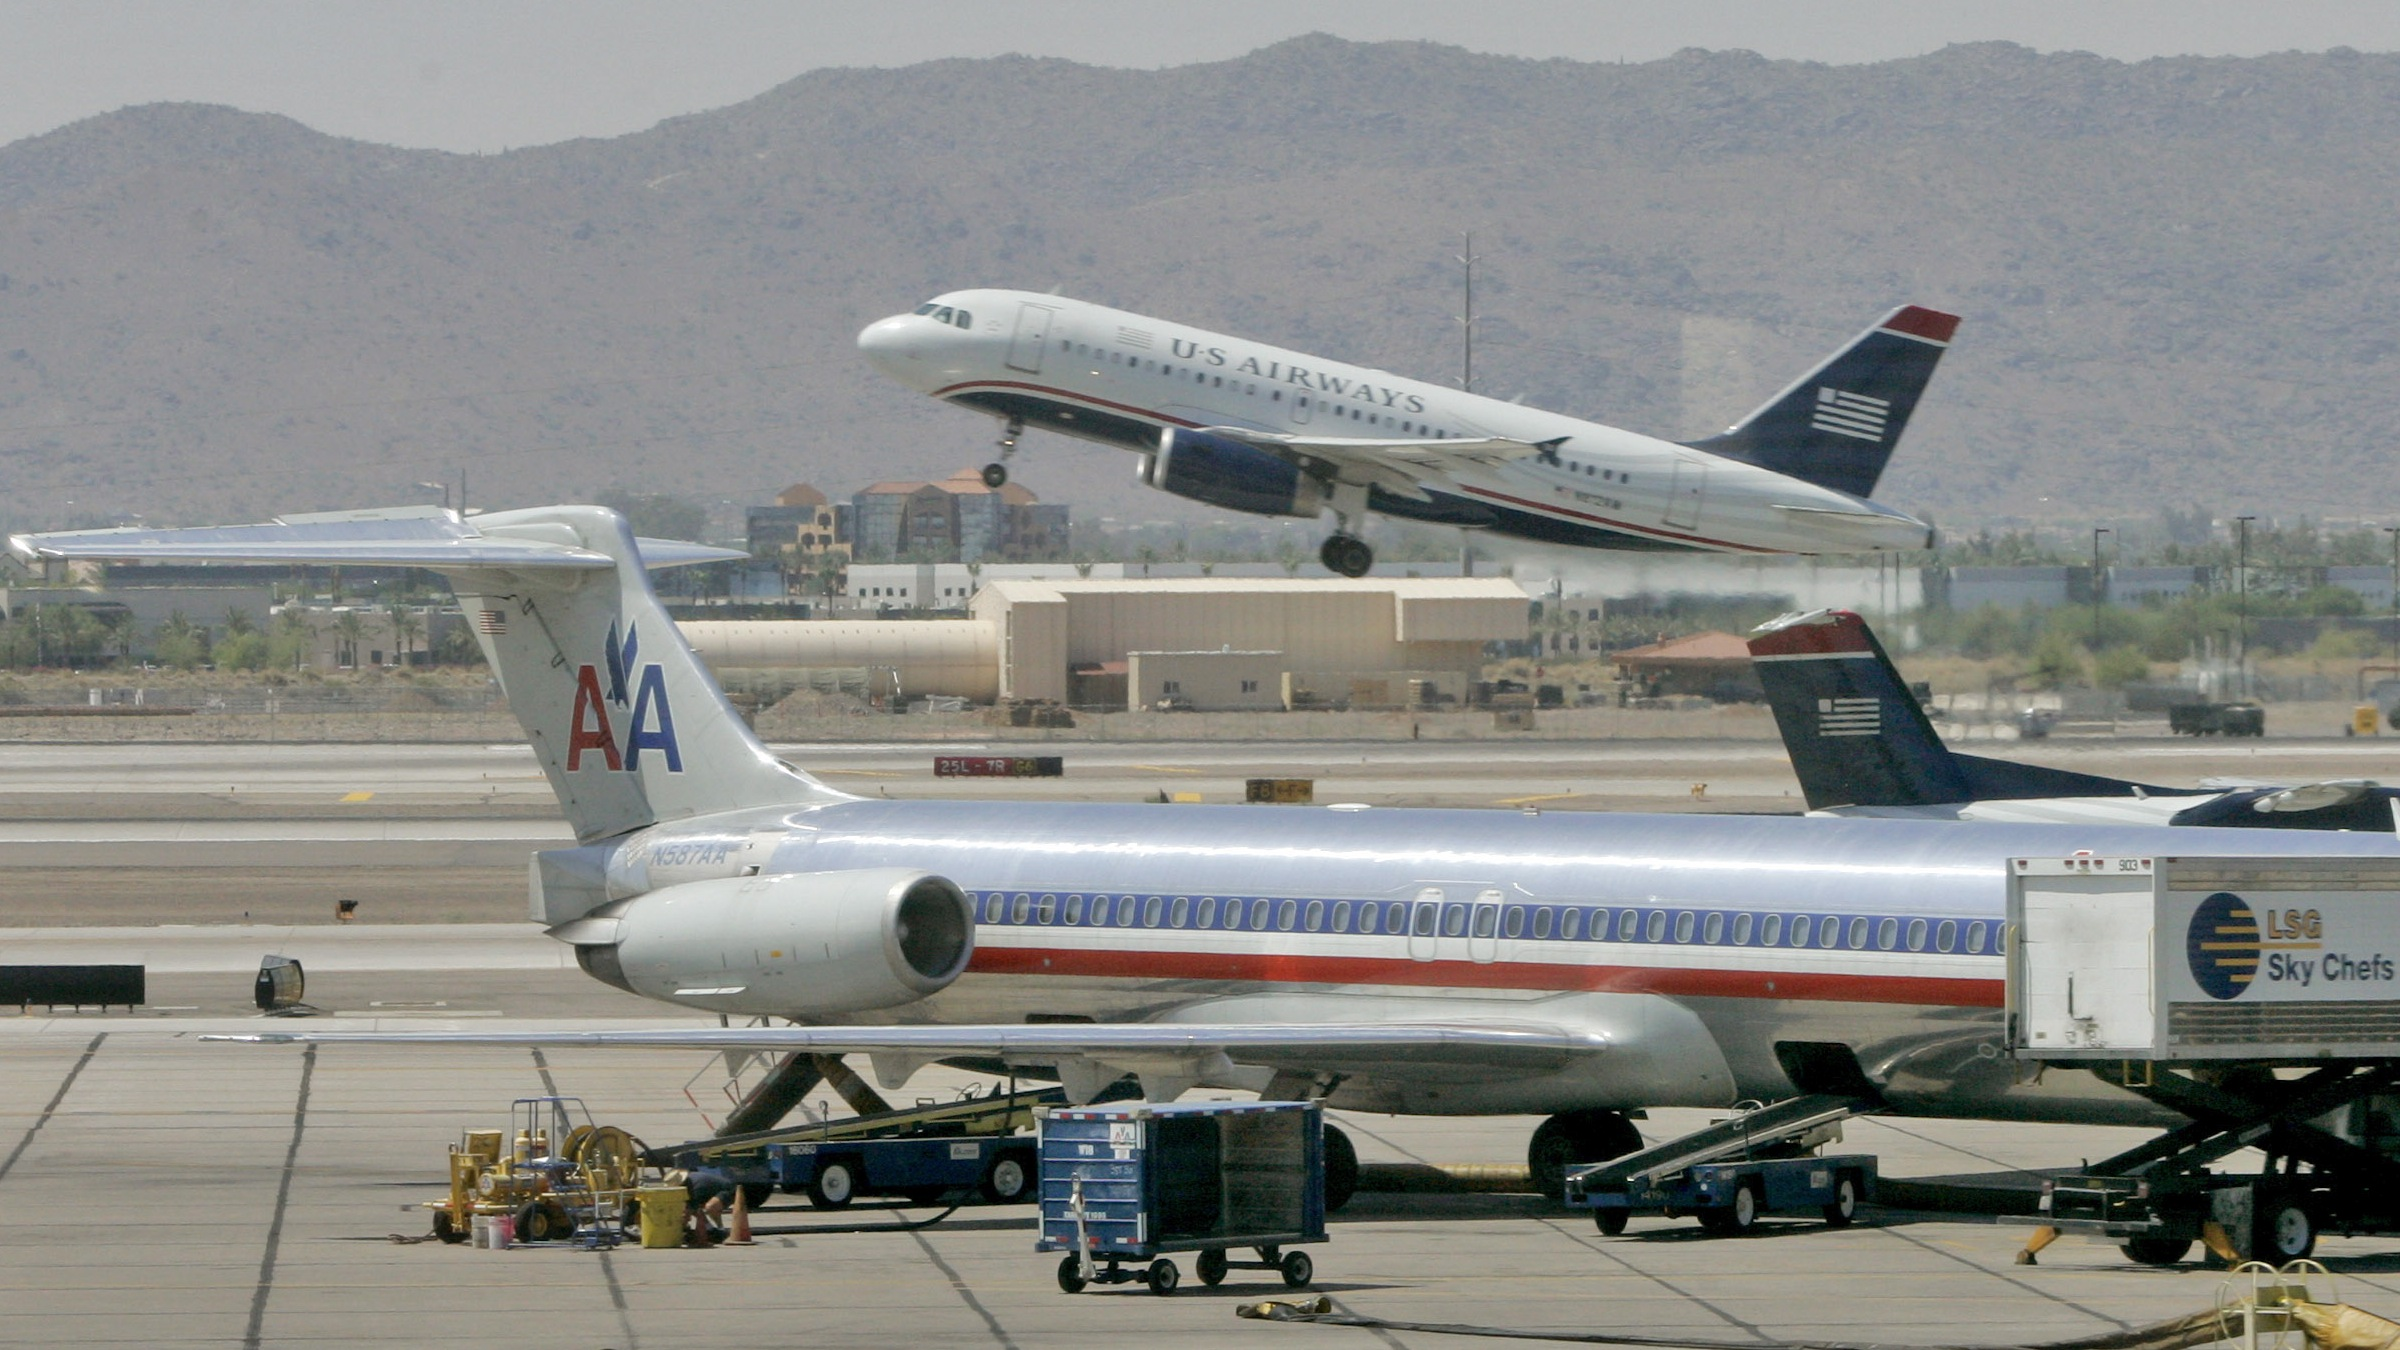 American Airlines and US Airways jets